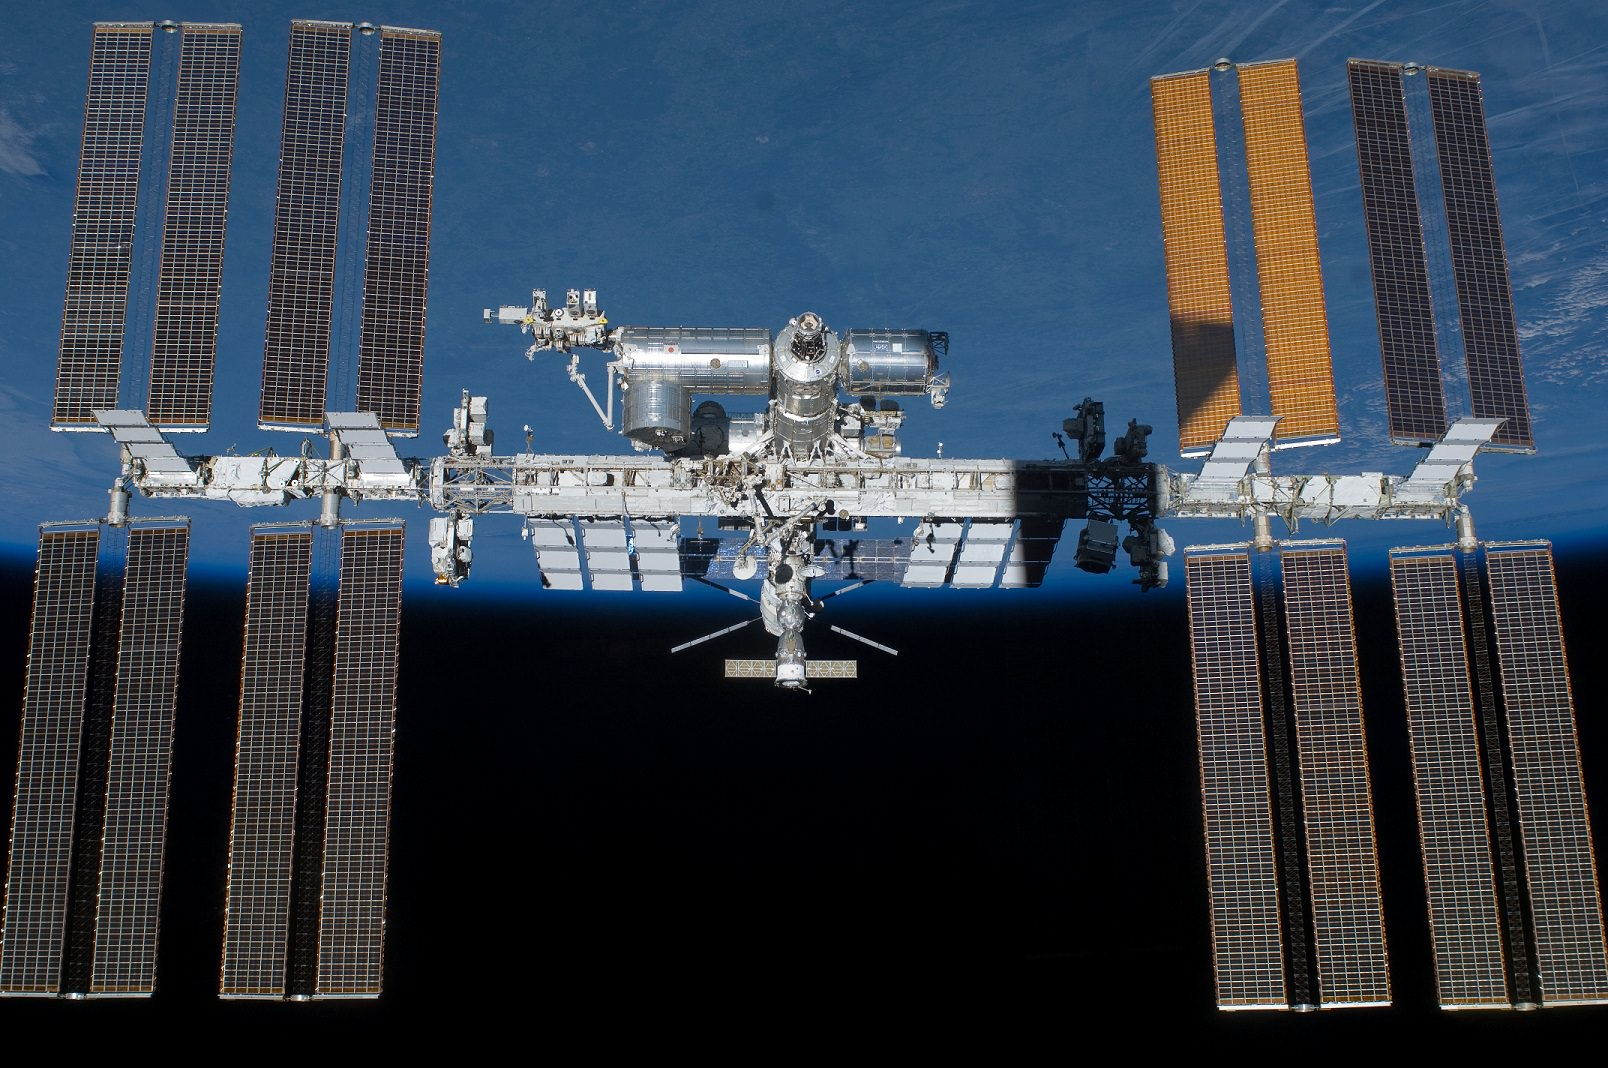 The International Space Station as seen by the departing STS-134 crew aboard space shuttle Endeavour in May 2011. Credit: NASA